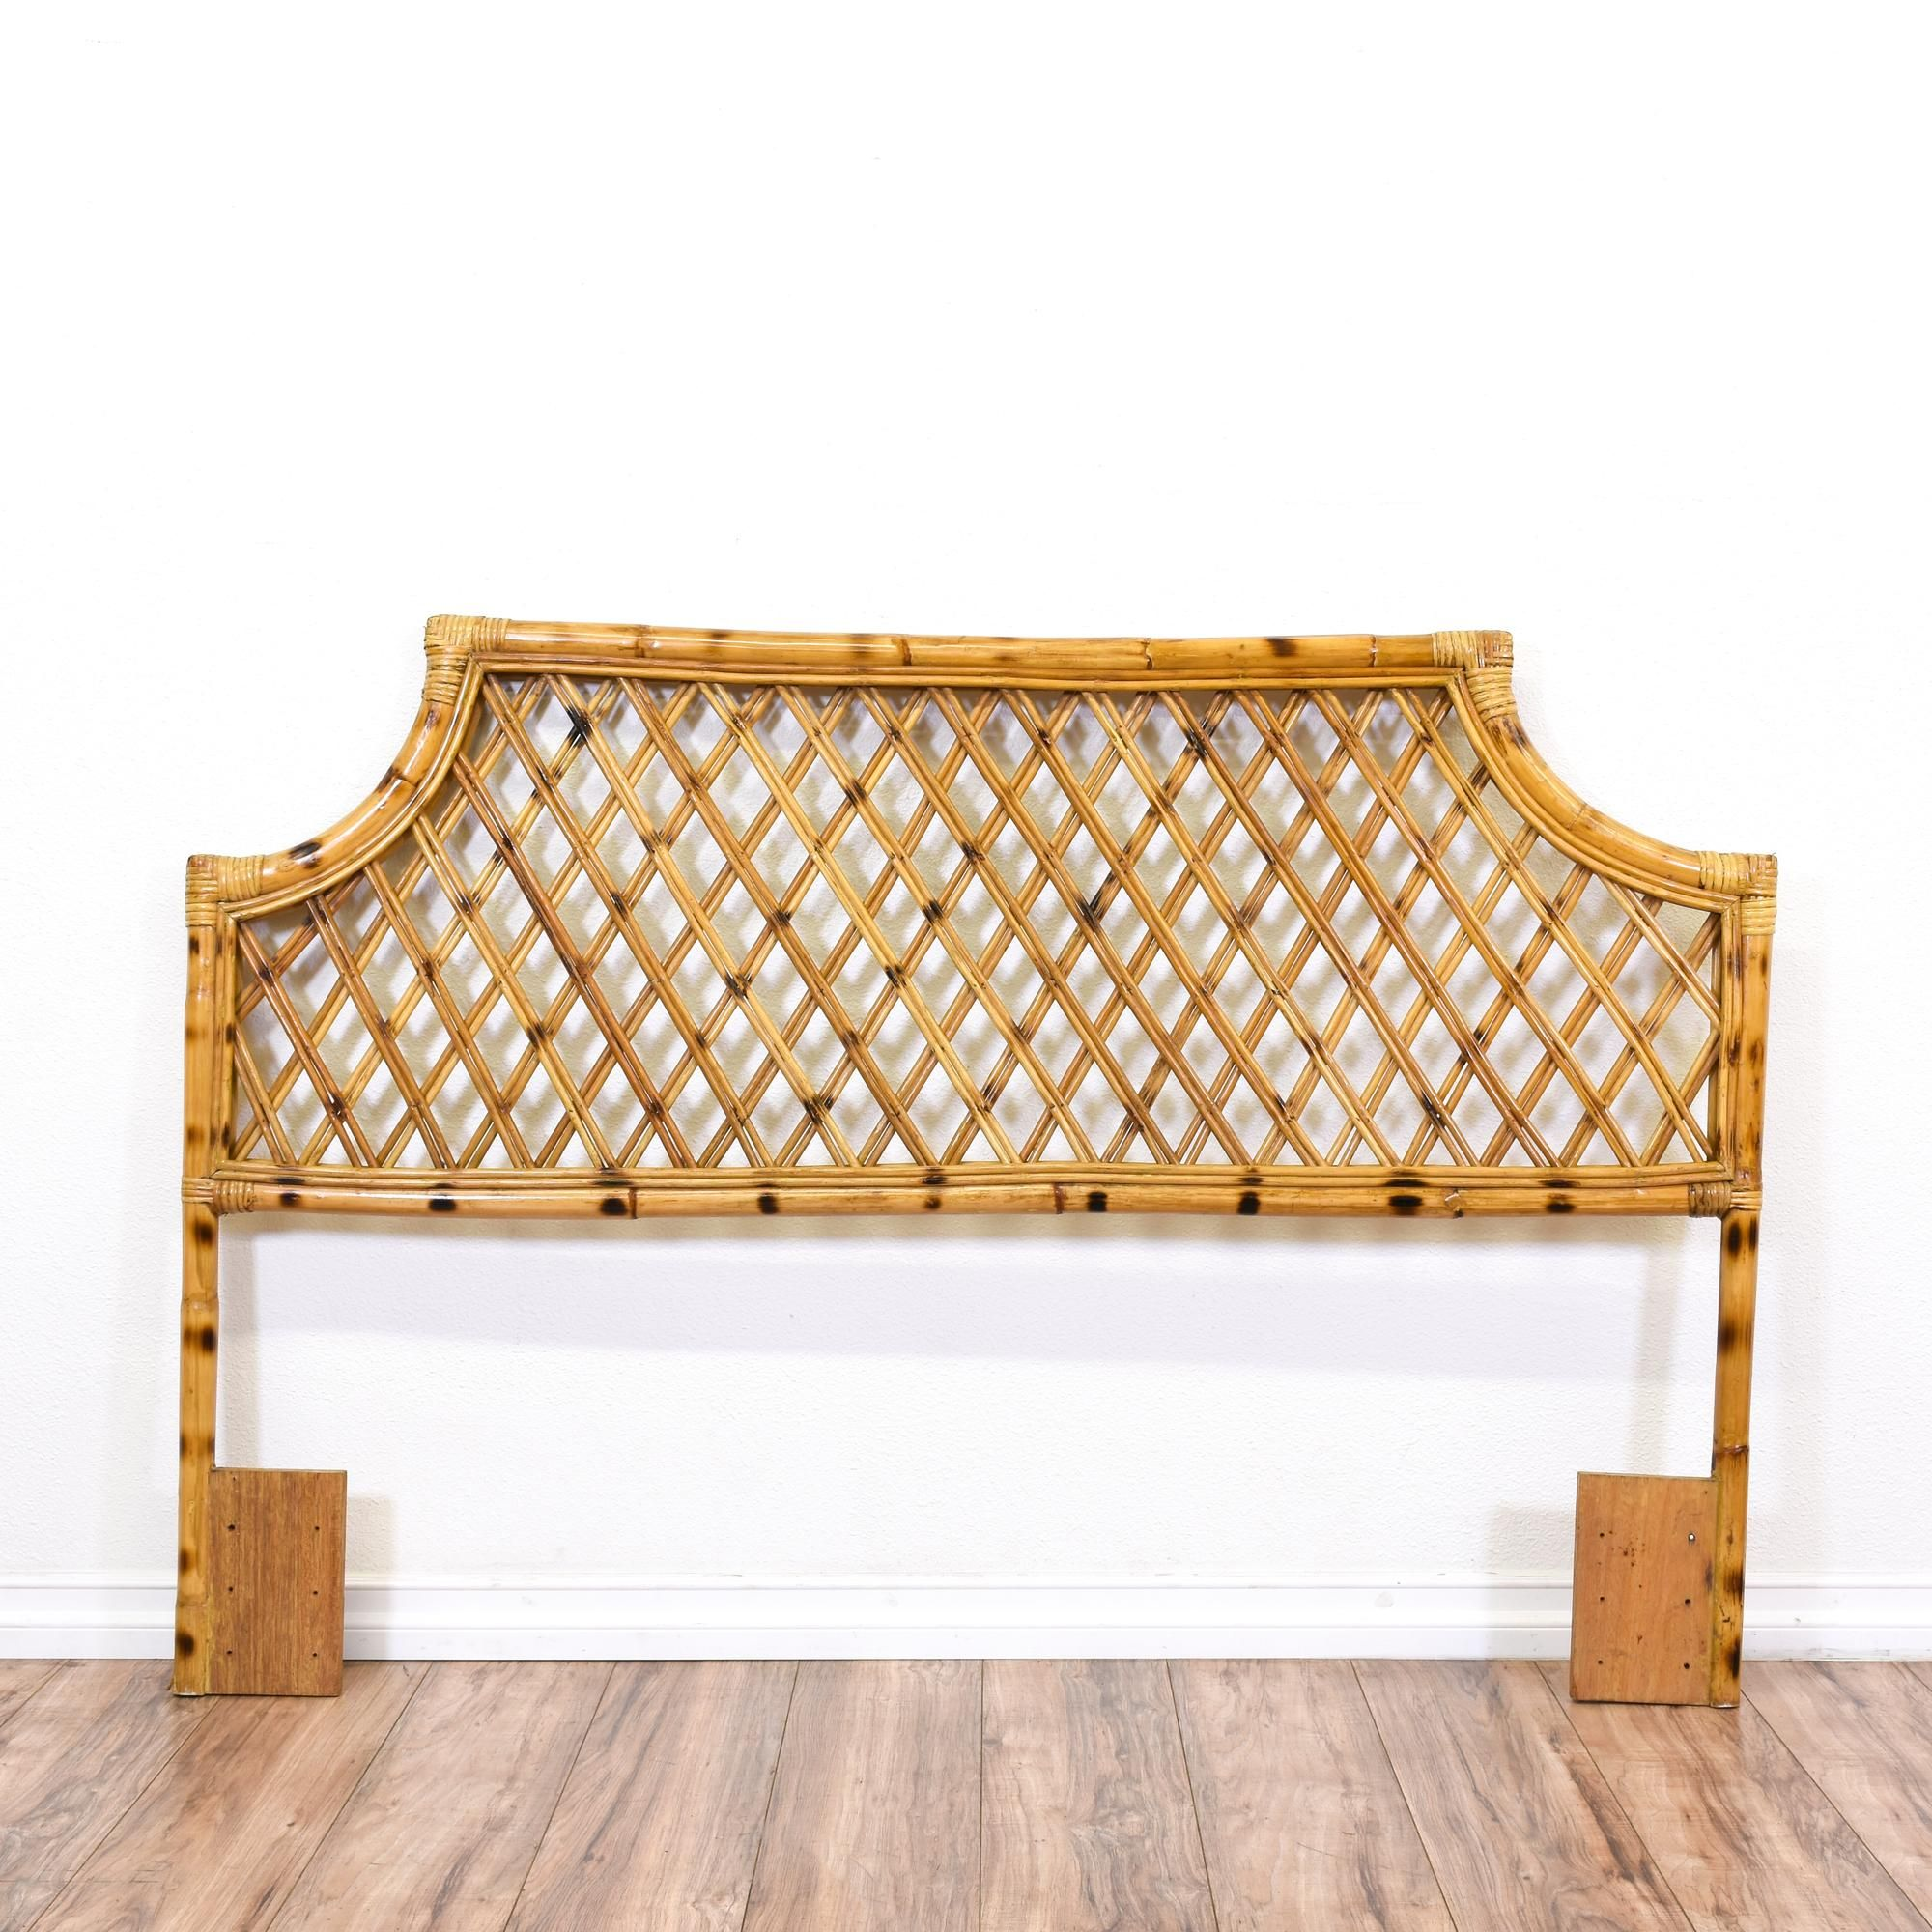 bamboo wood with loveseat showing to photos of room furniture living attachment sofas welcome cane nature and regard works sectionals